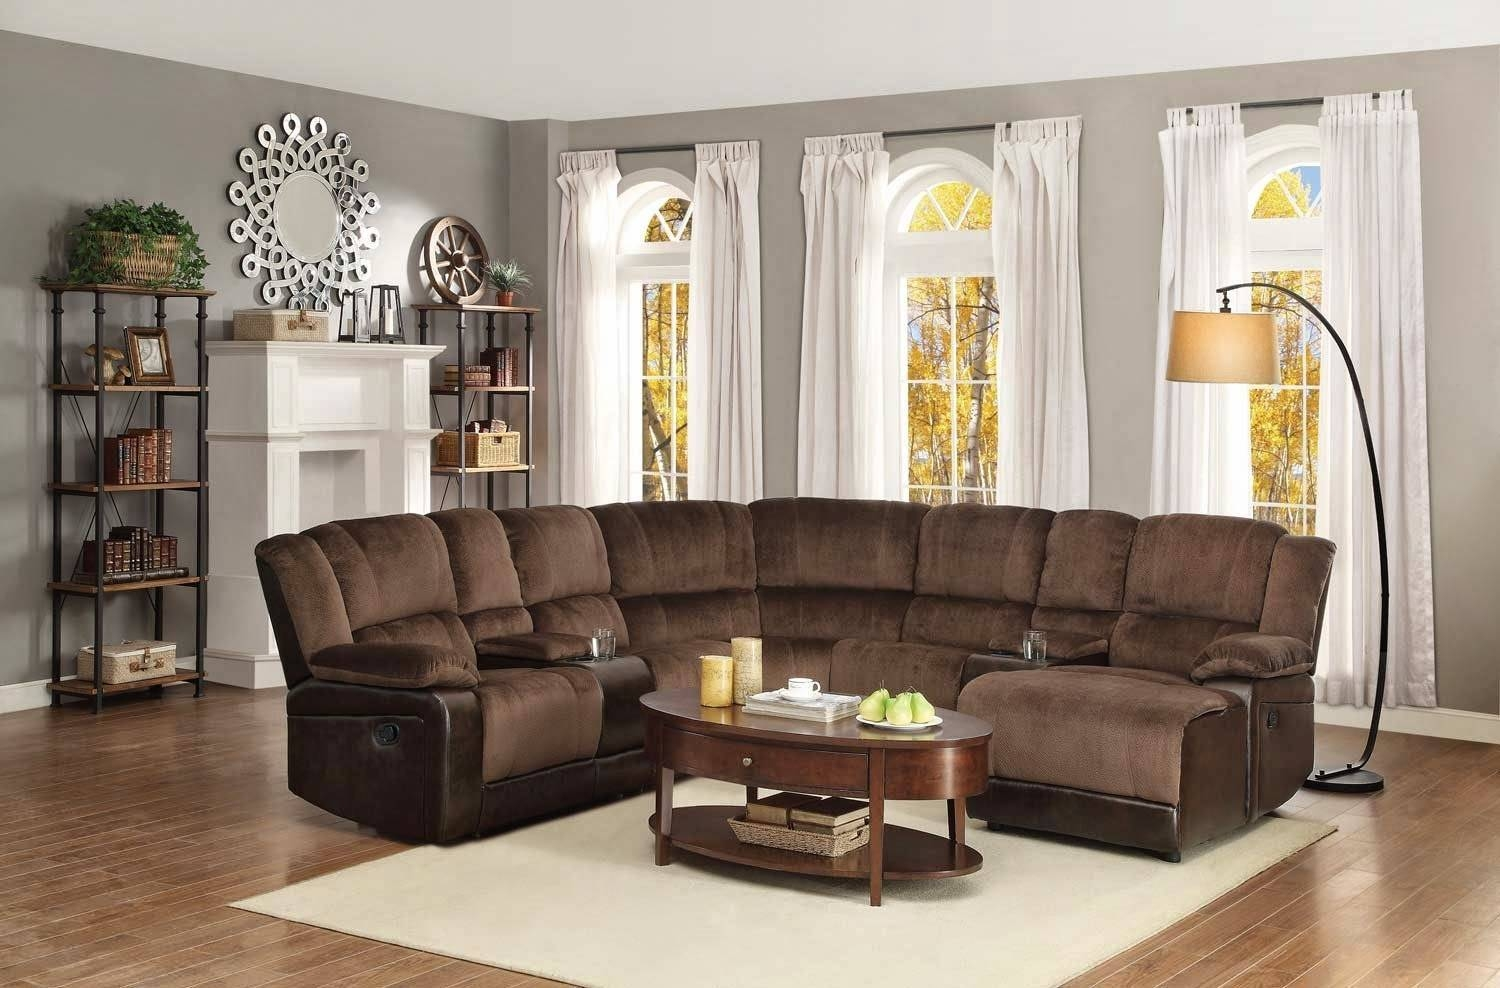 Sofa & Couch: Wayfair Sectionals | Sectional Couches For Sale inside Curved Sectional Sofas With Recliner (Image 13 of 15)